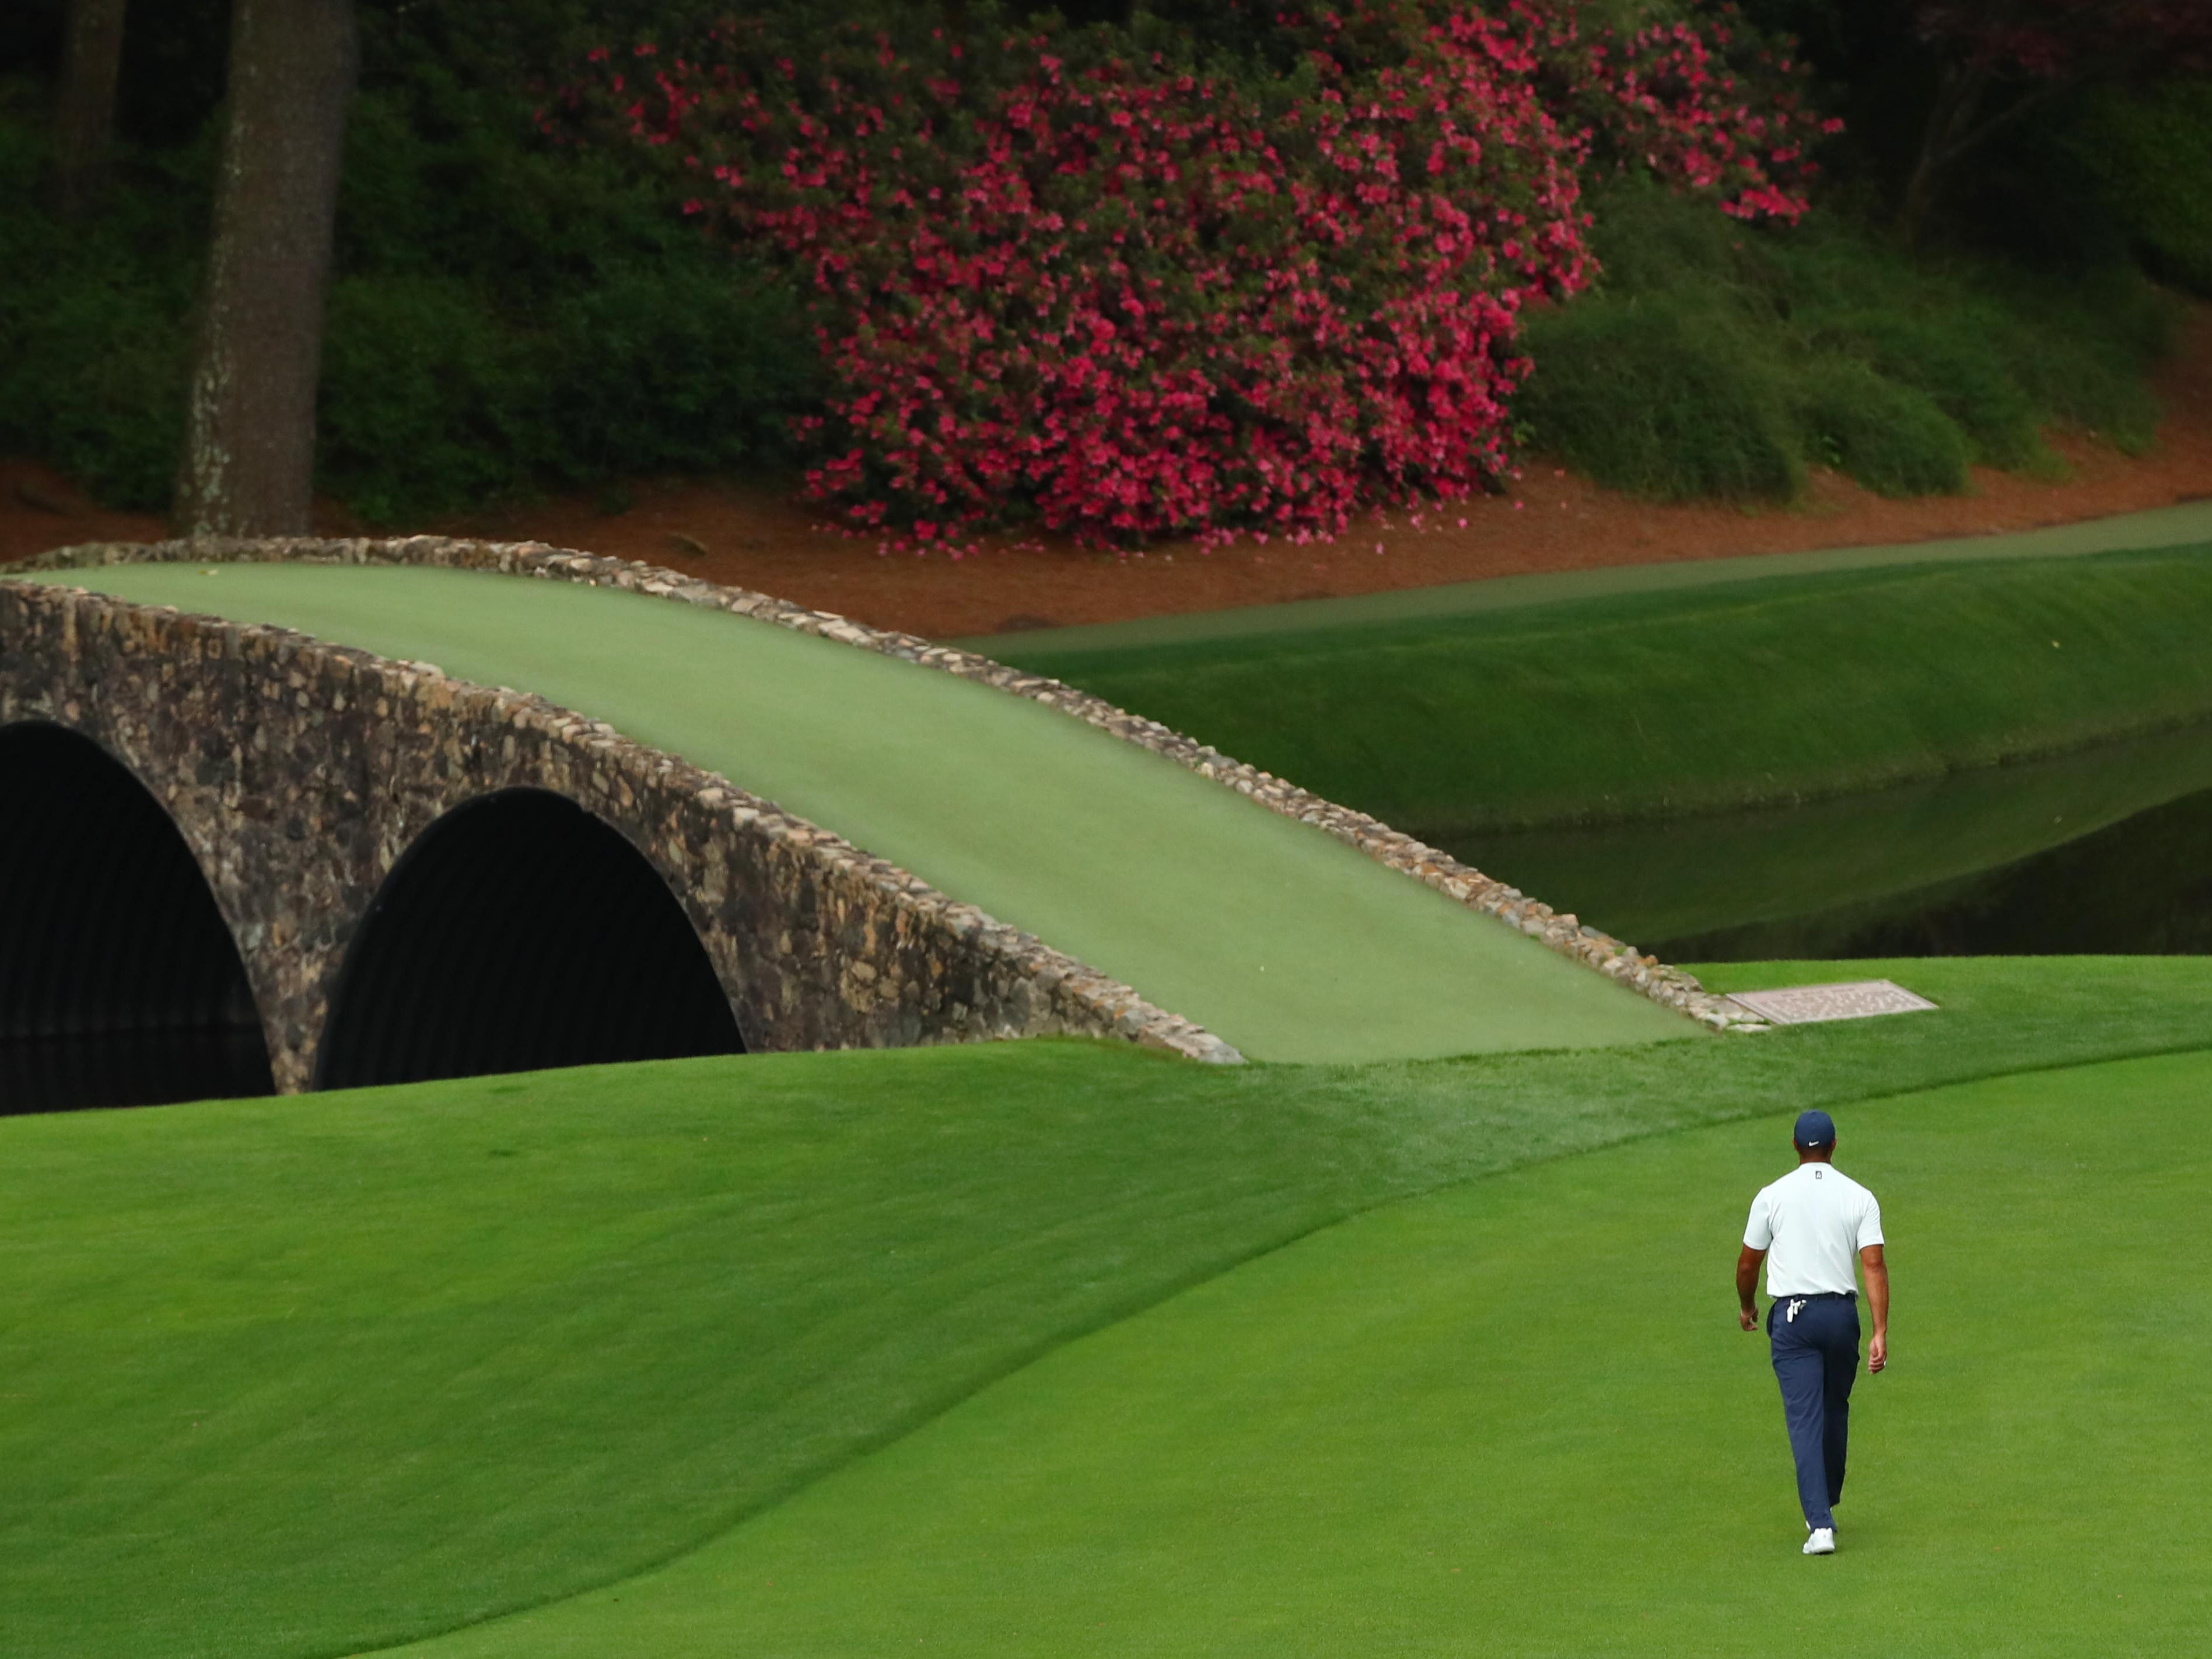 Apr 12, 2019; Augusta, GA, USA; Tiger Woods walks across the Hogan Bridge to mark his ball on the 12th green after play is suspended during the second round of The Masters golf tournament at Augusta National Golf Club. Mandatory Credit: Rob Schumacher-USA TODAY Sports